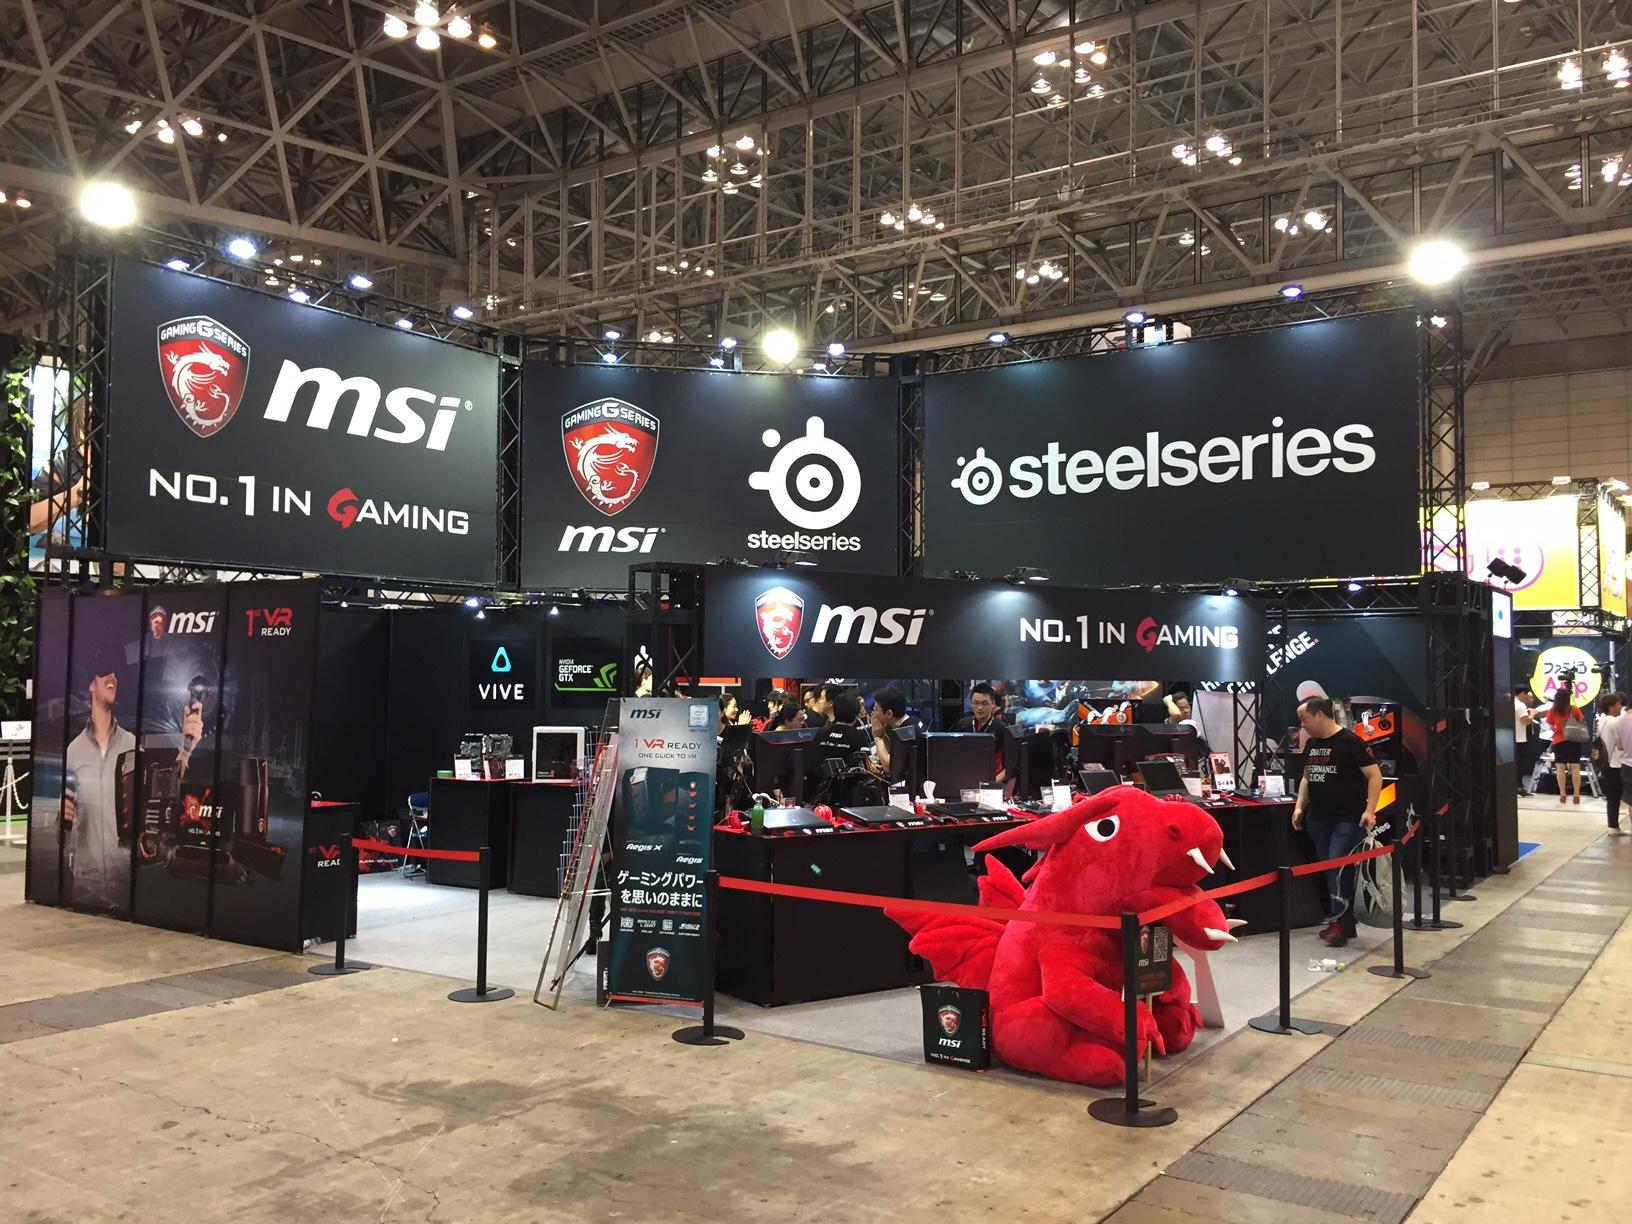 TOKYO GAME SHOW 2016 msi / SteelSeries Booth